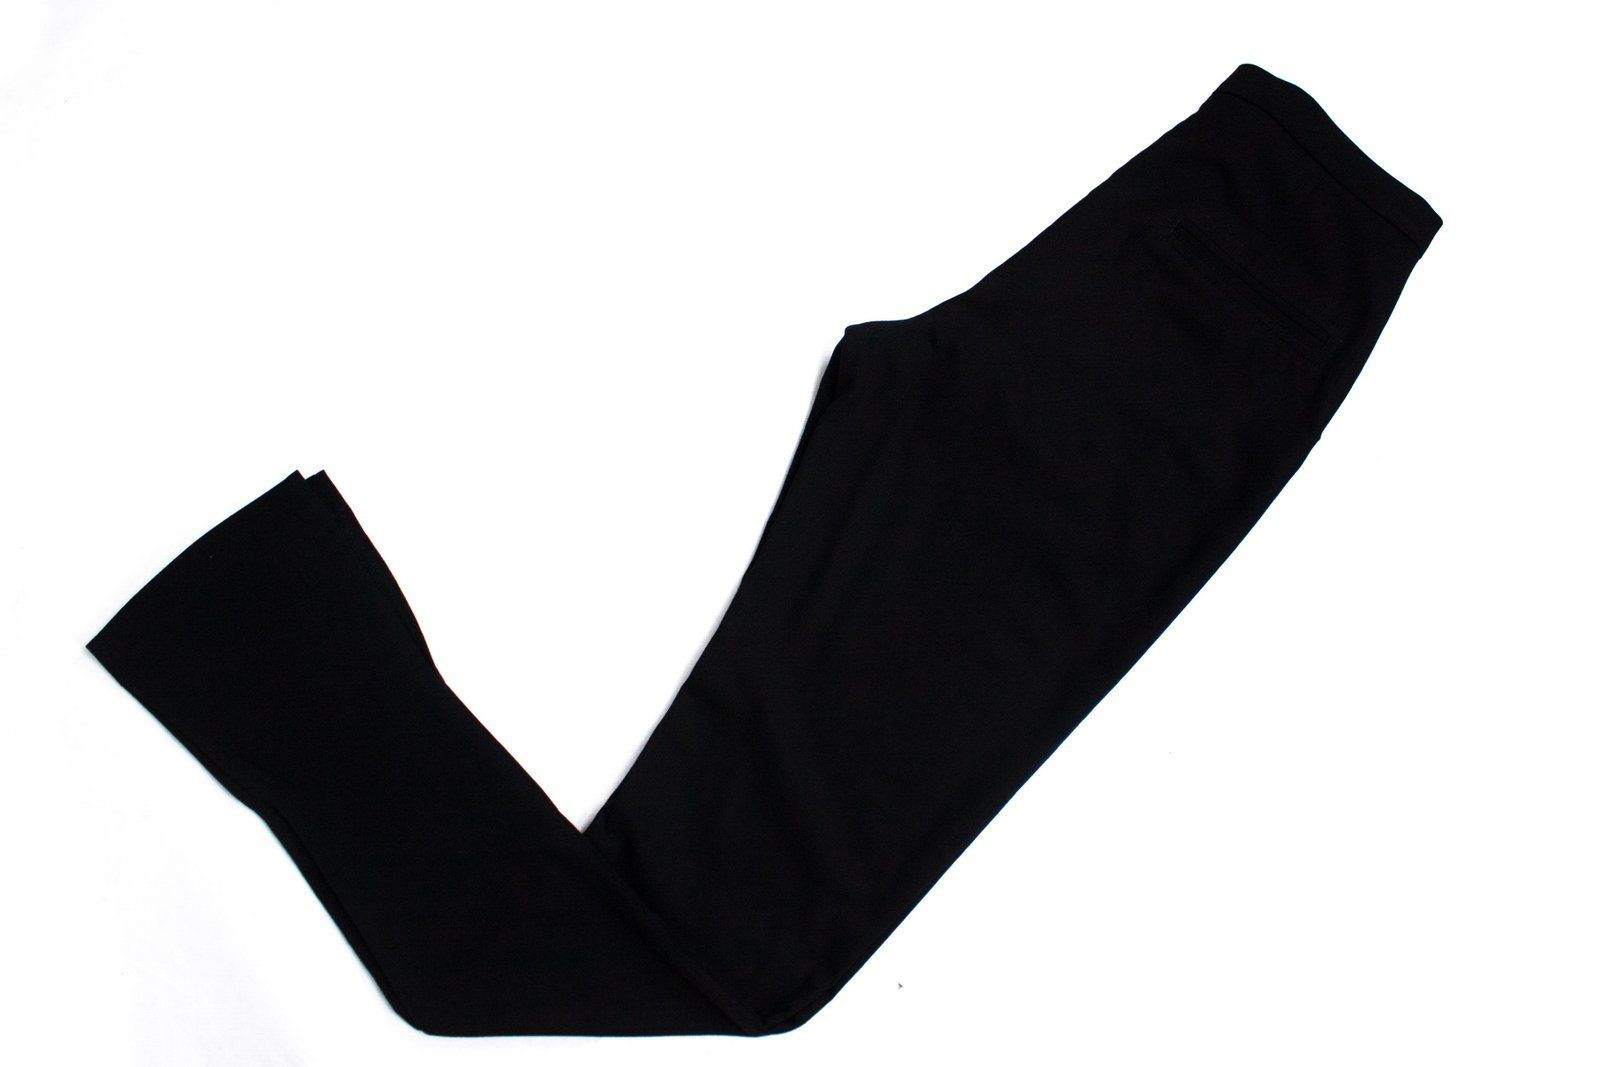 ALTEWAISAOME black pants trousers, US 10/UK 12/EU 38 - secondfirst